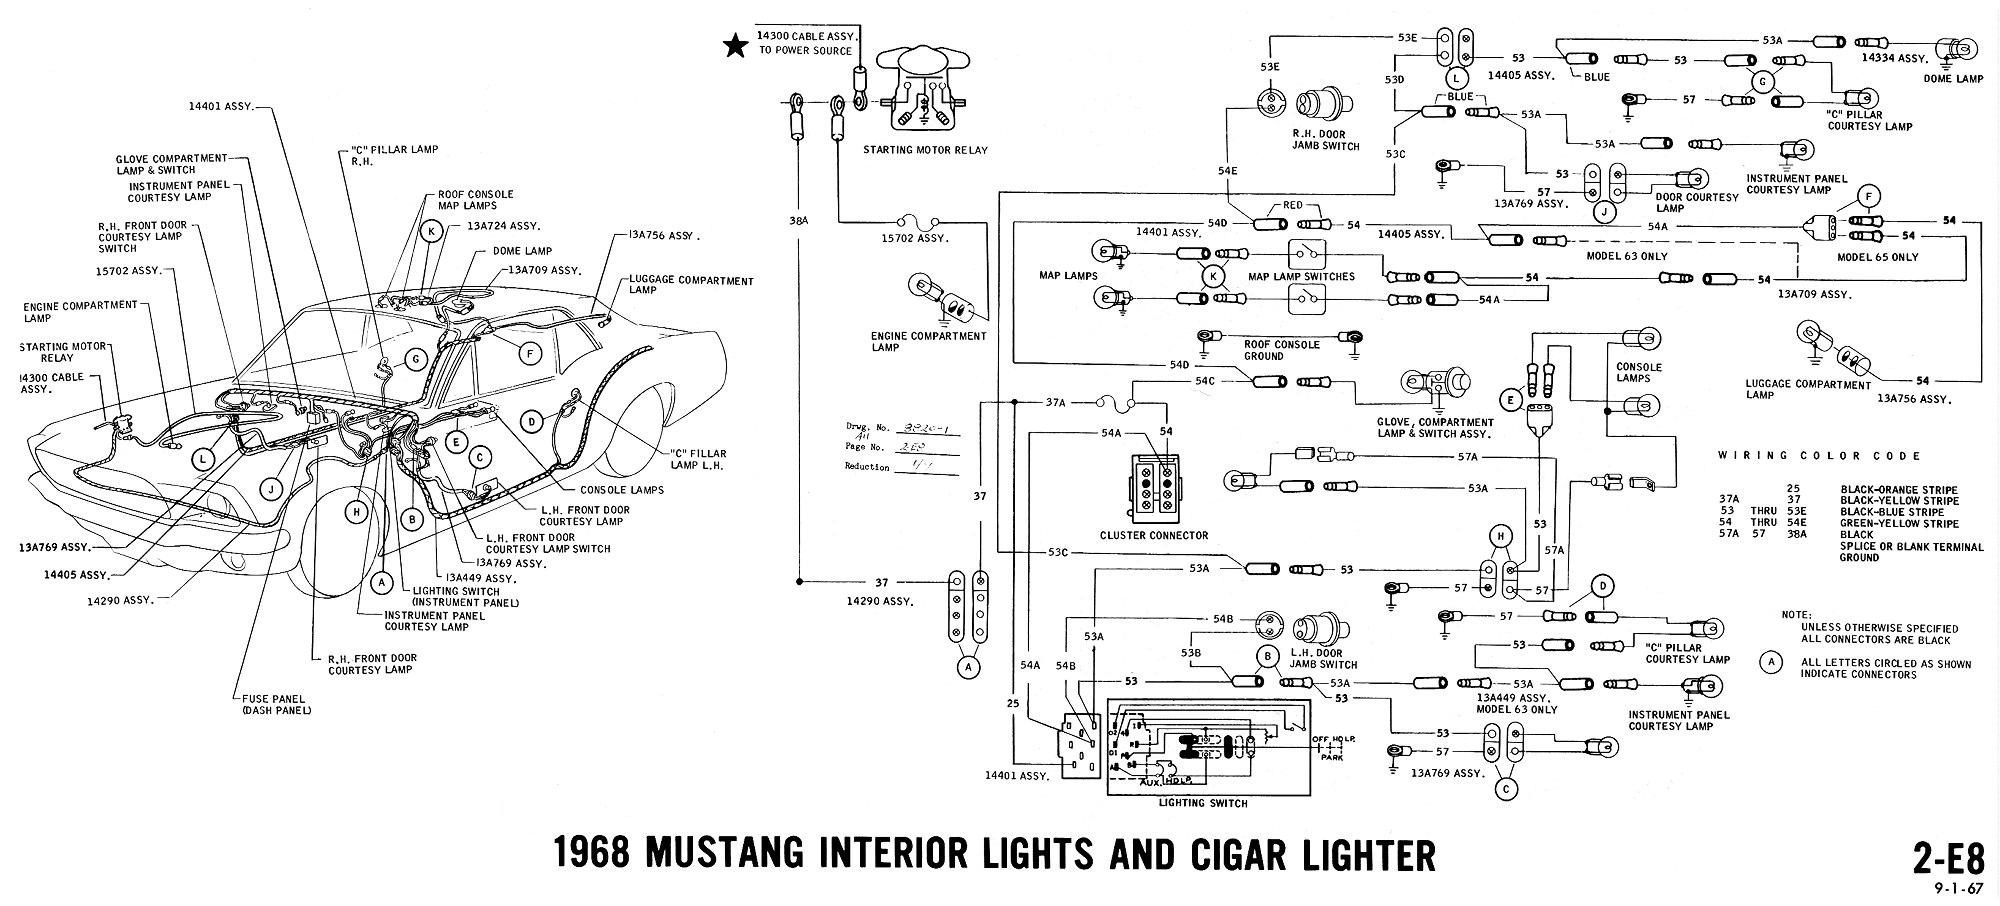 Camaro Tail Light Diagram Parts Wiring Diagram Images